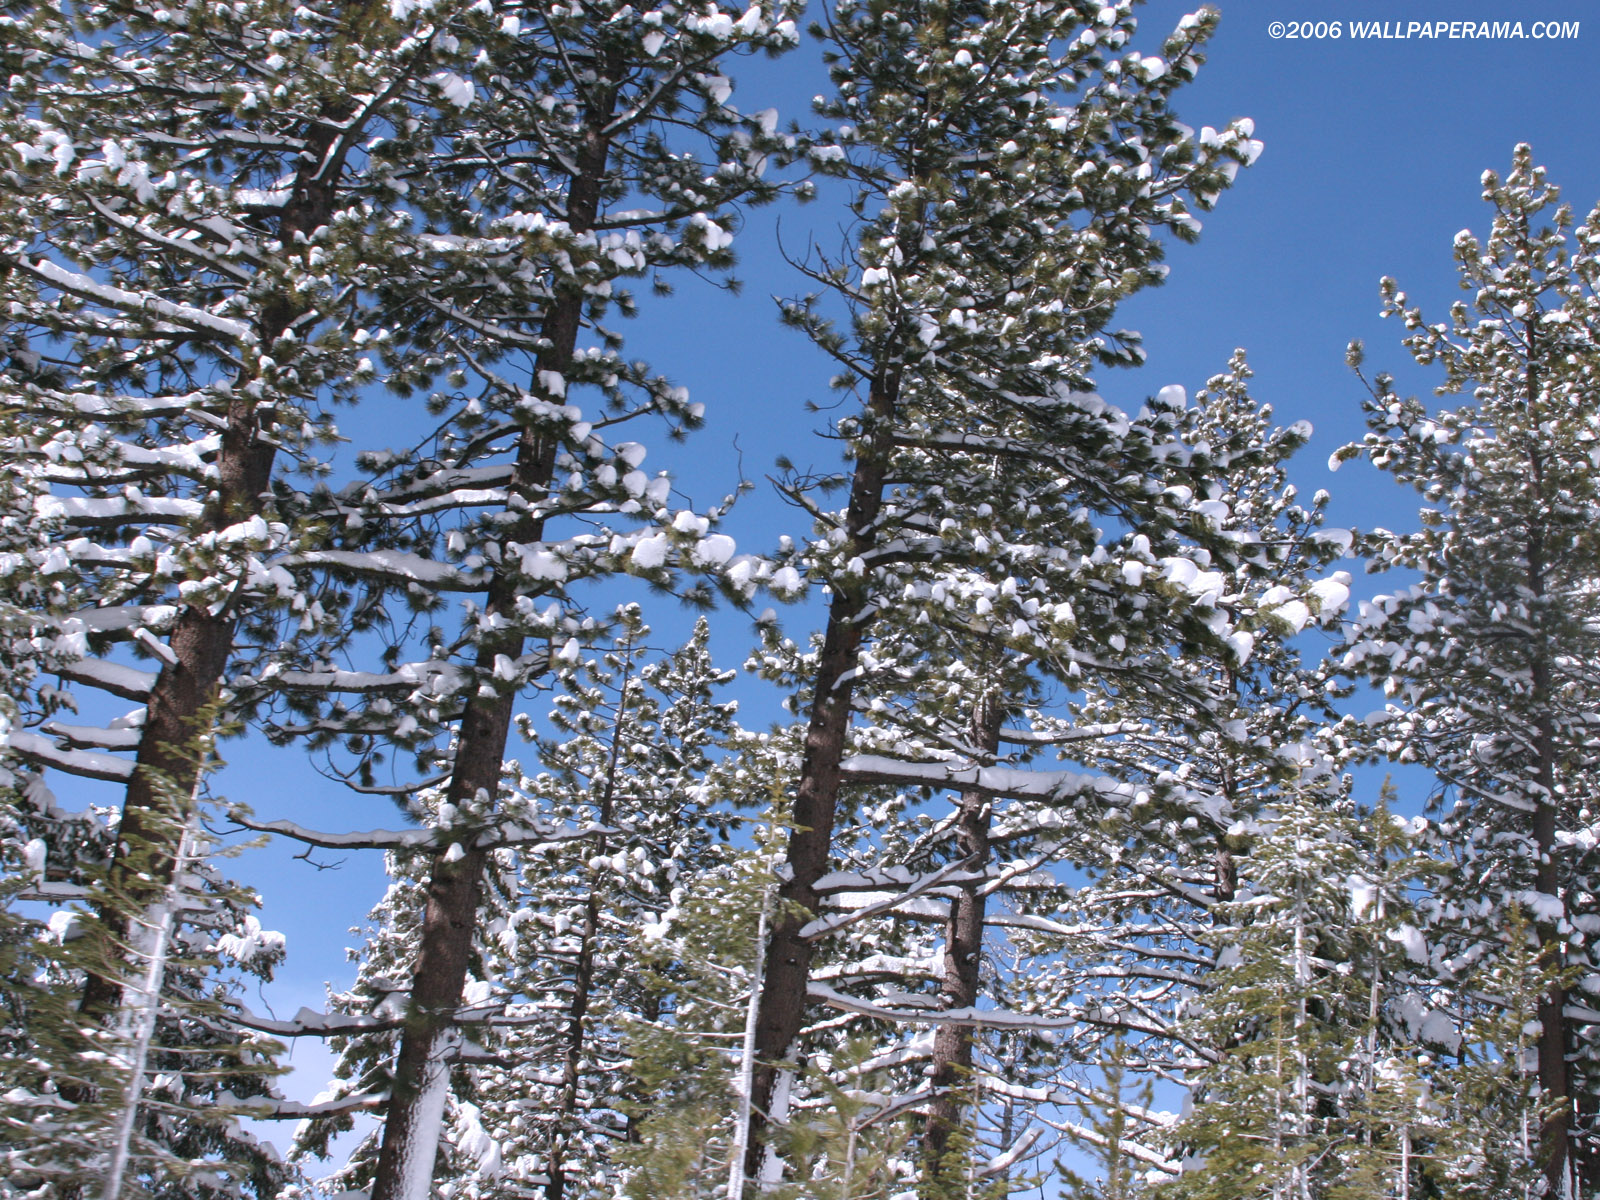 Sugar pine tree wallpaper free hd backgrounds images pictures - Pine tree wallpaper iphone ...